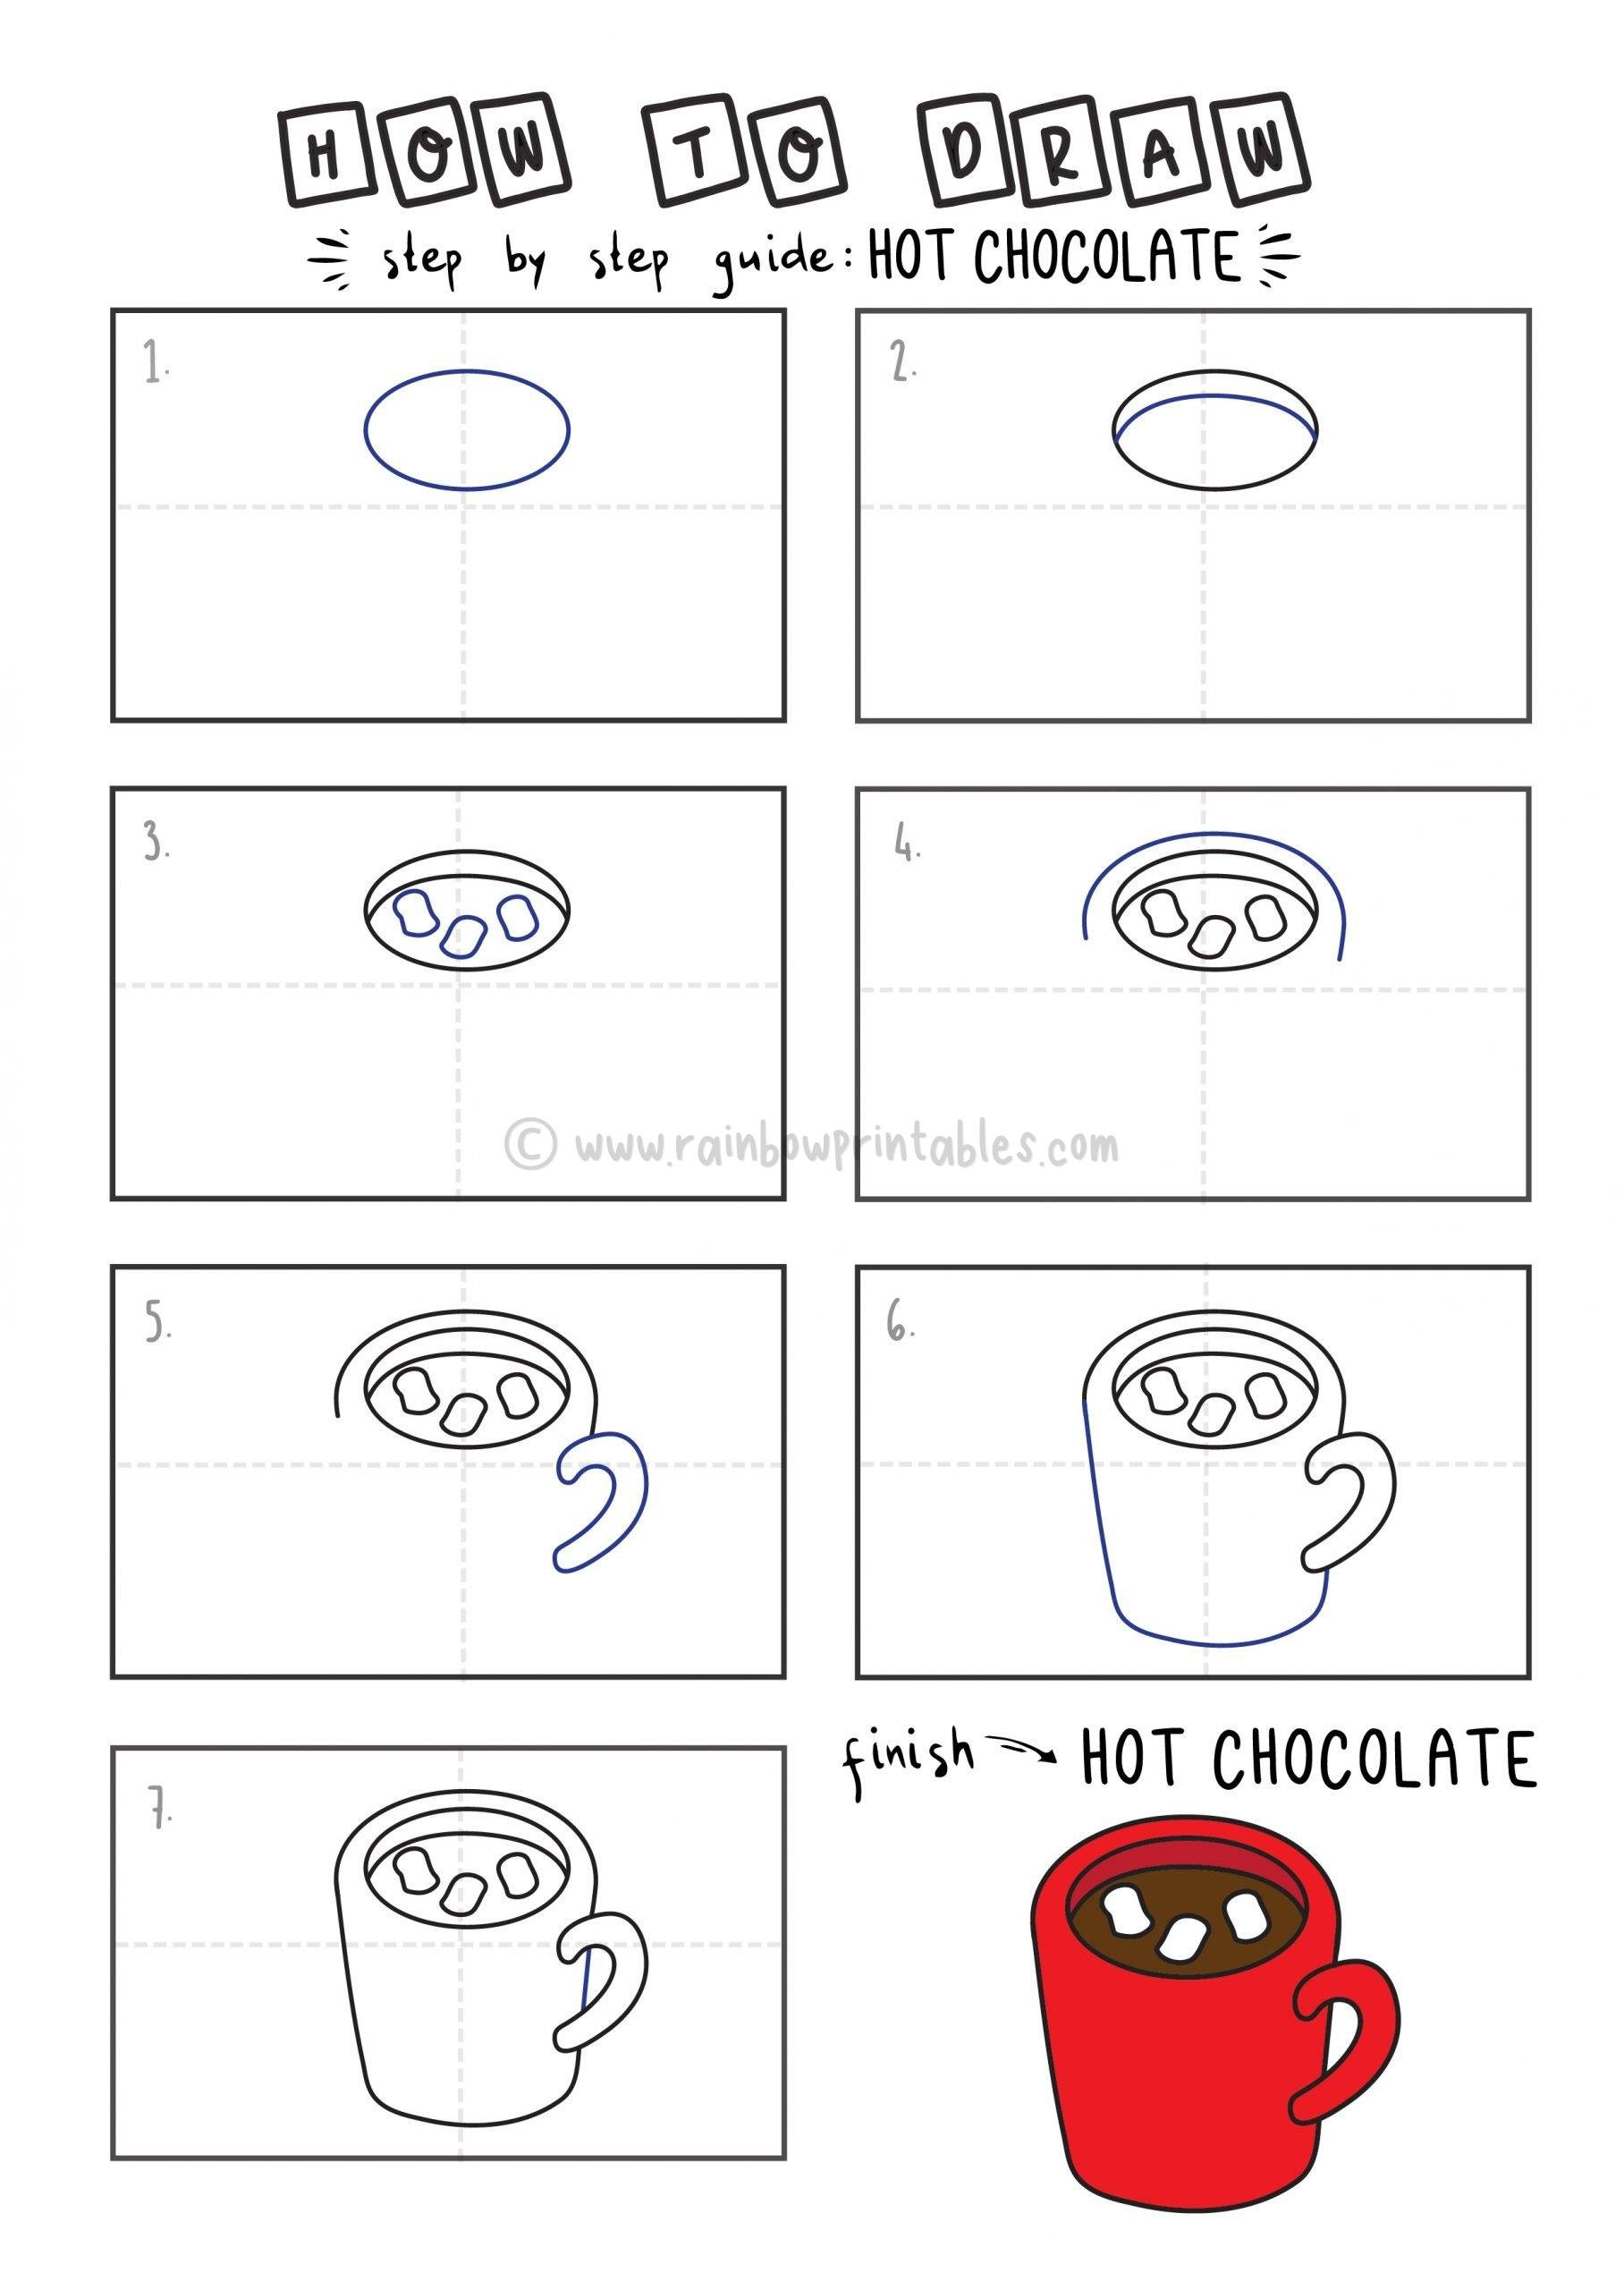 HOW TO DRAW HOT CHOCOLATE MUG MARSHMALLOW FOR YOUNG KIDS EASY DRAWINGS ART GUIDE STEP BY STEP